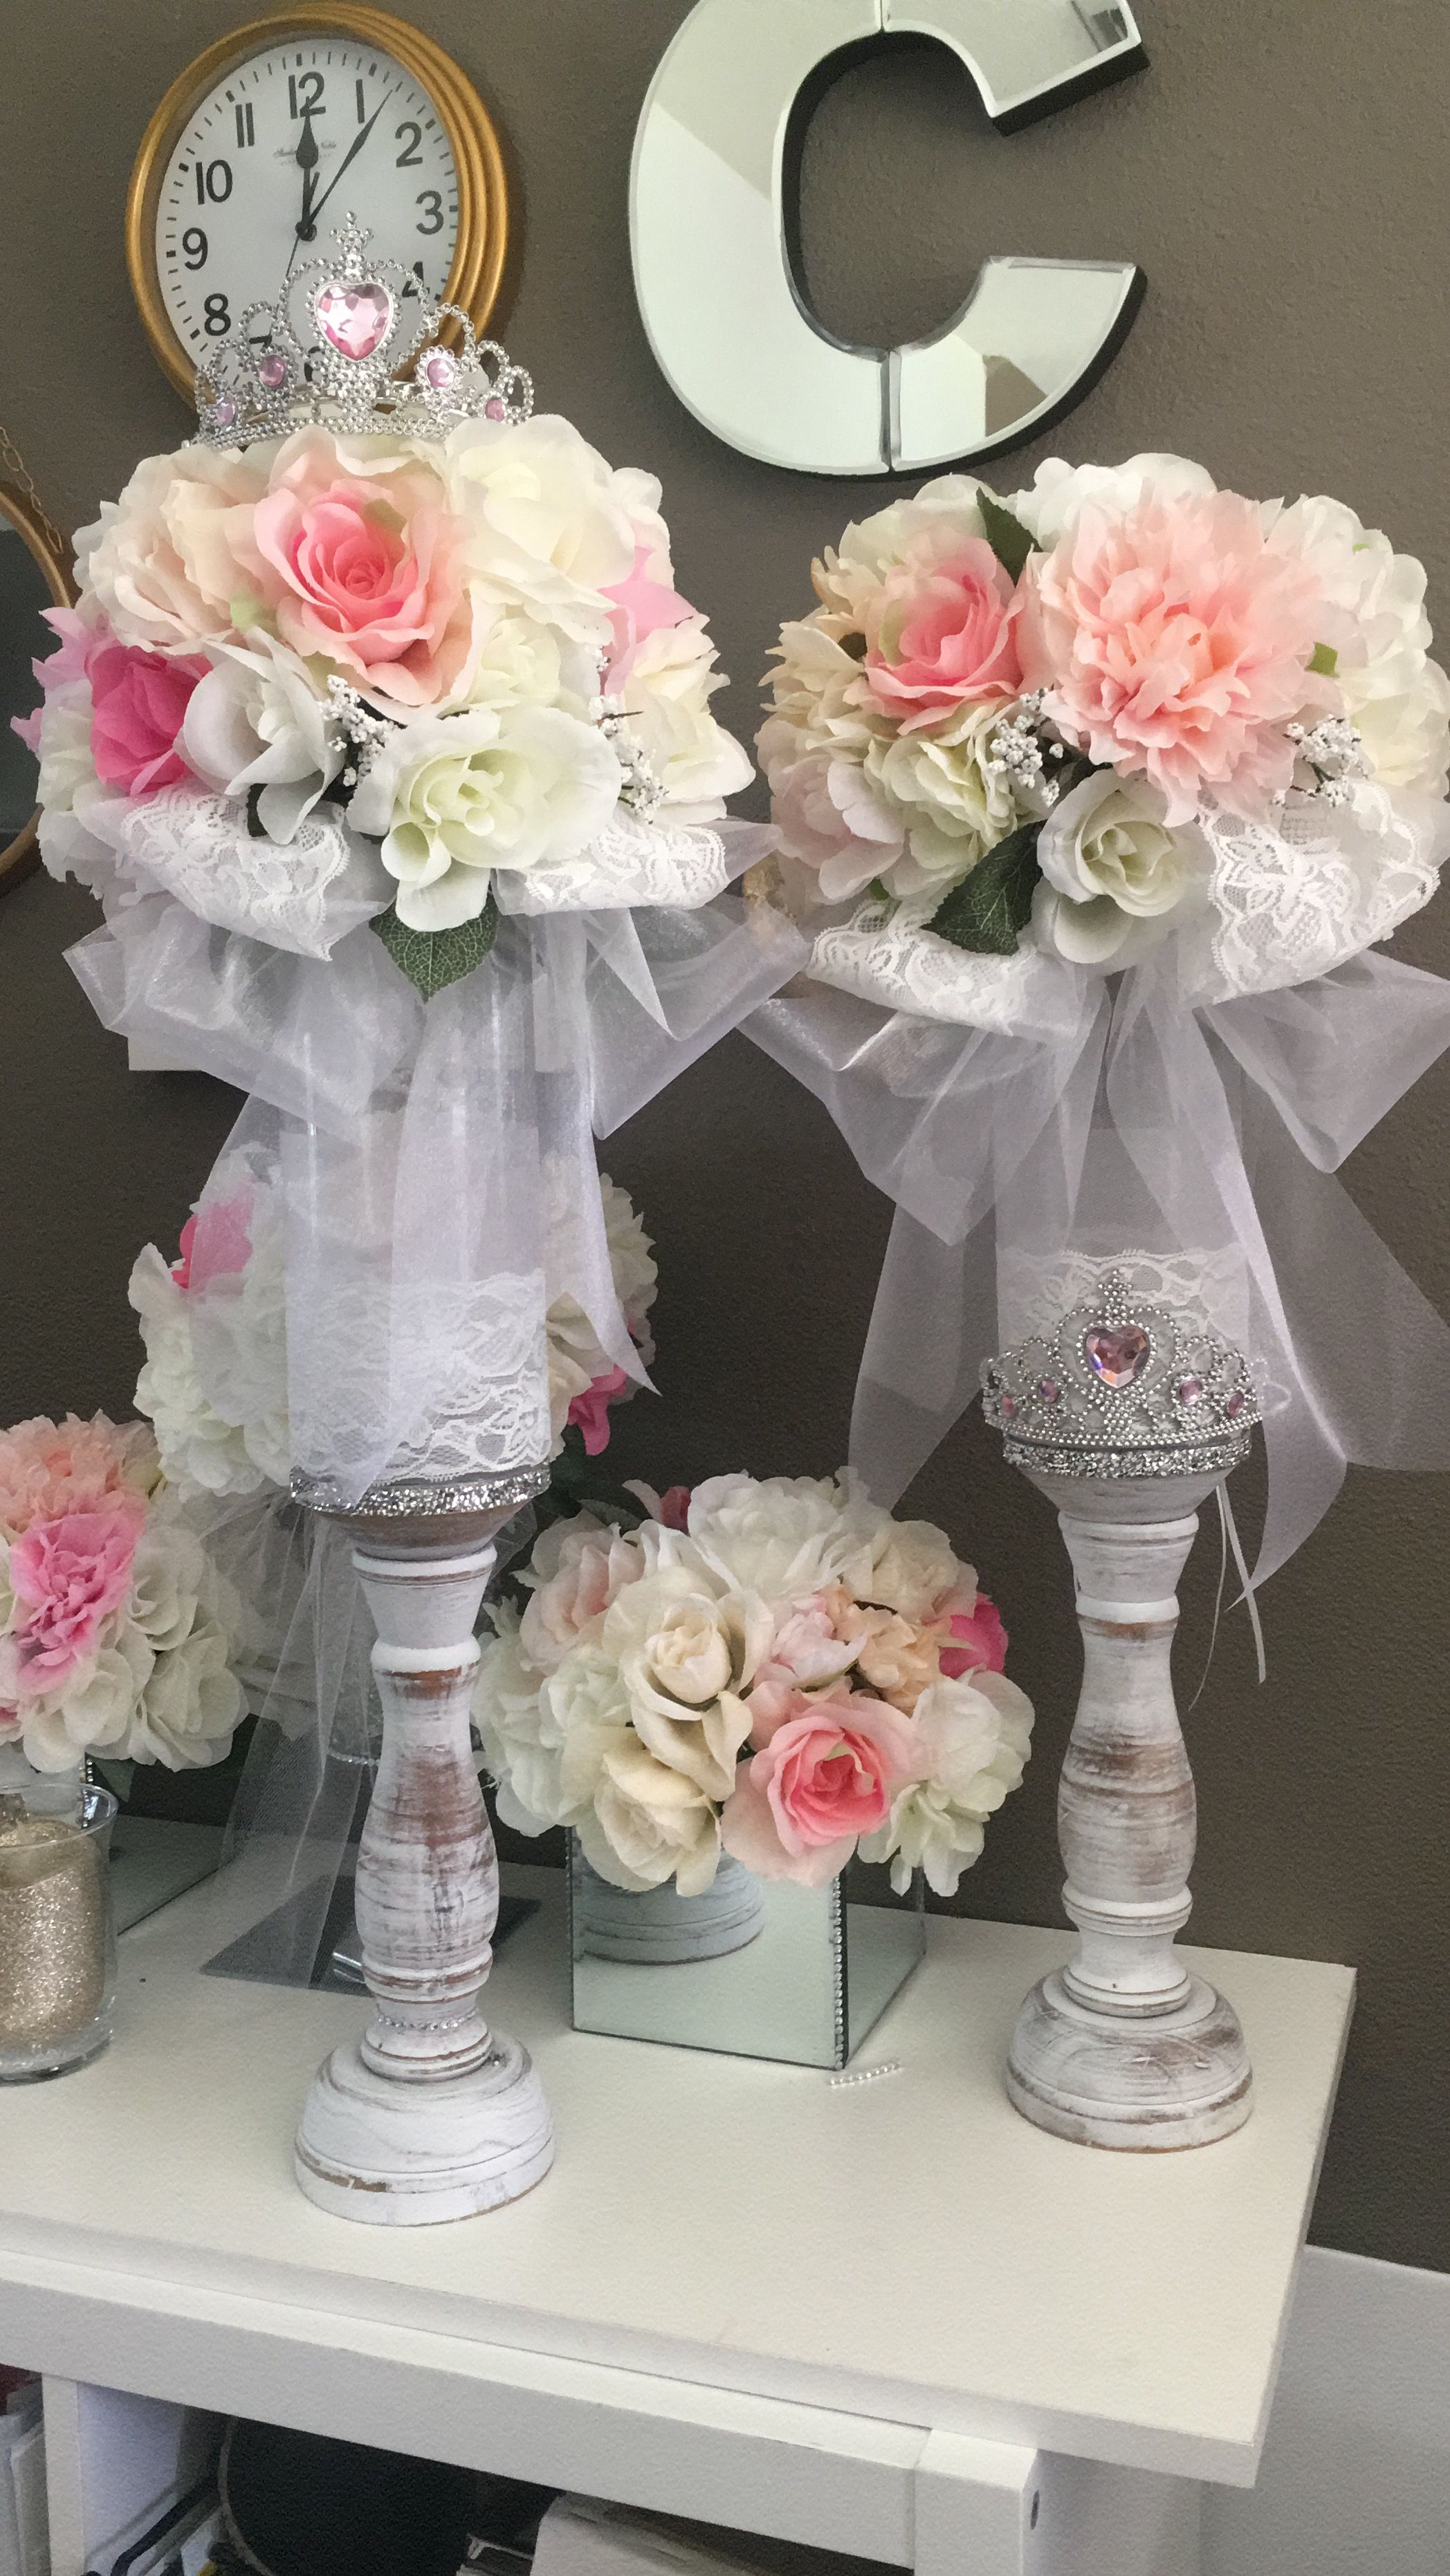 Diy flowers centerpiece for weddings sweet 1516 party